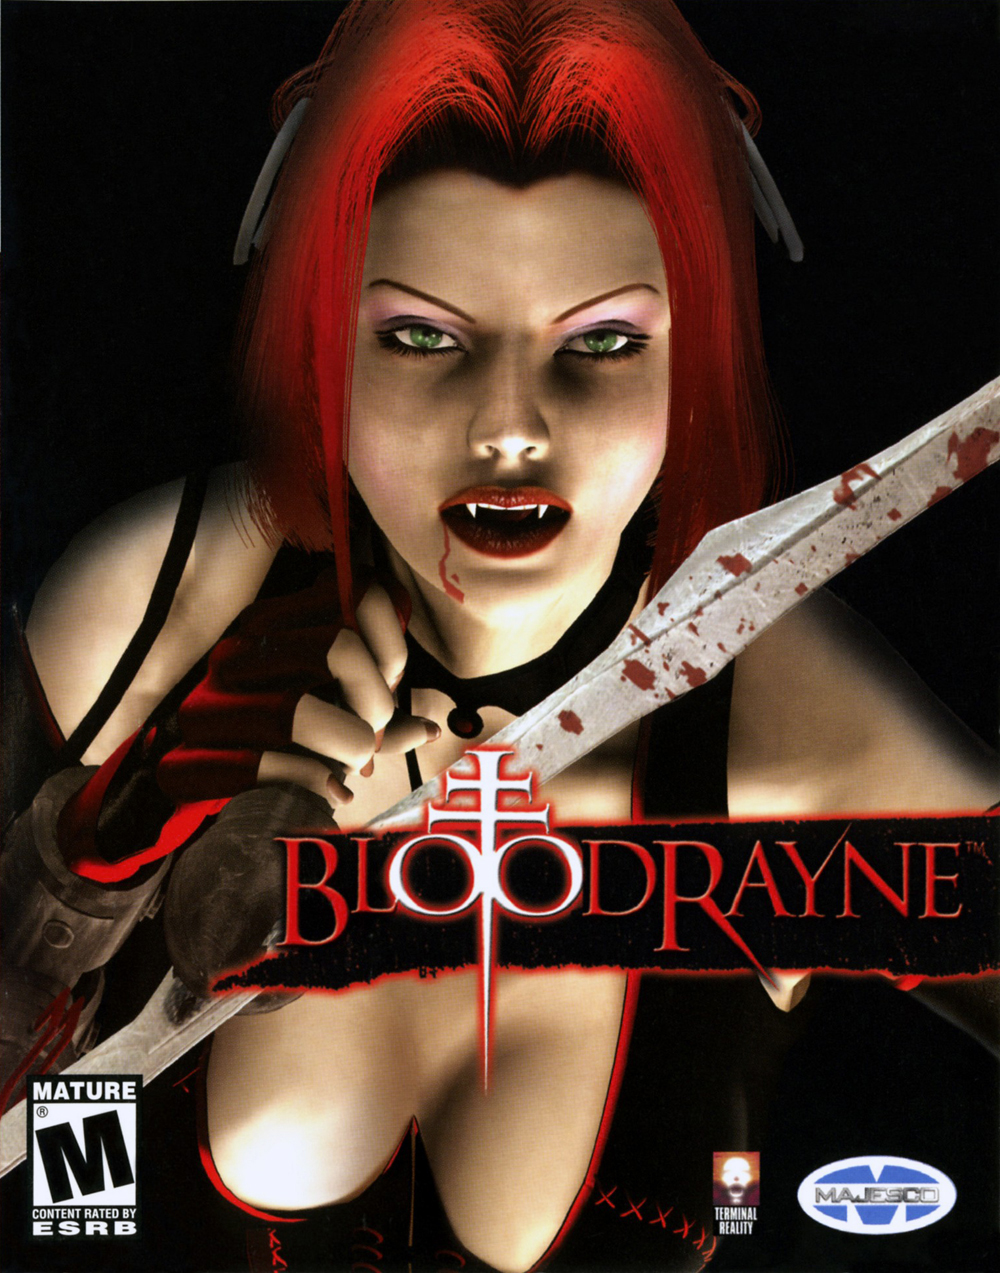 bloodrayne_cover_north_america_europe_consoles.jpg